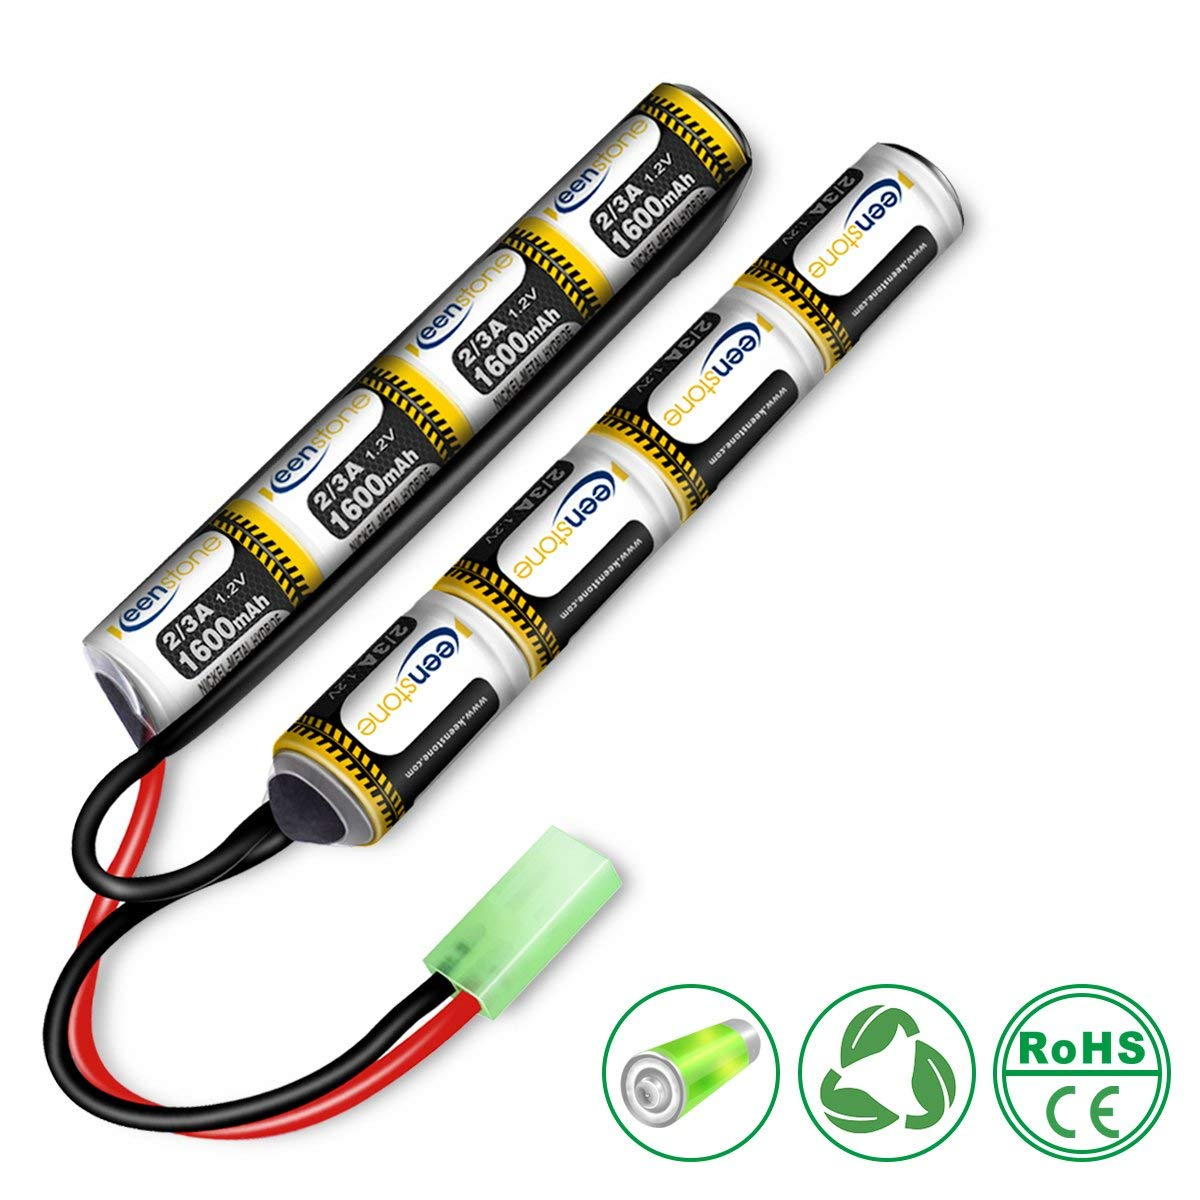 End-of-year Cleanrance! 9.6V 1600mAh NiMH Butterfly Nunchuck Mini Battery Pack with Mini Tamiya Female Connector for Airsoft Guns